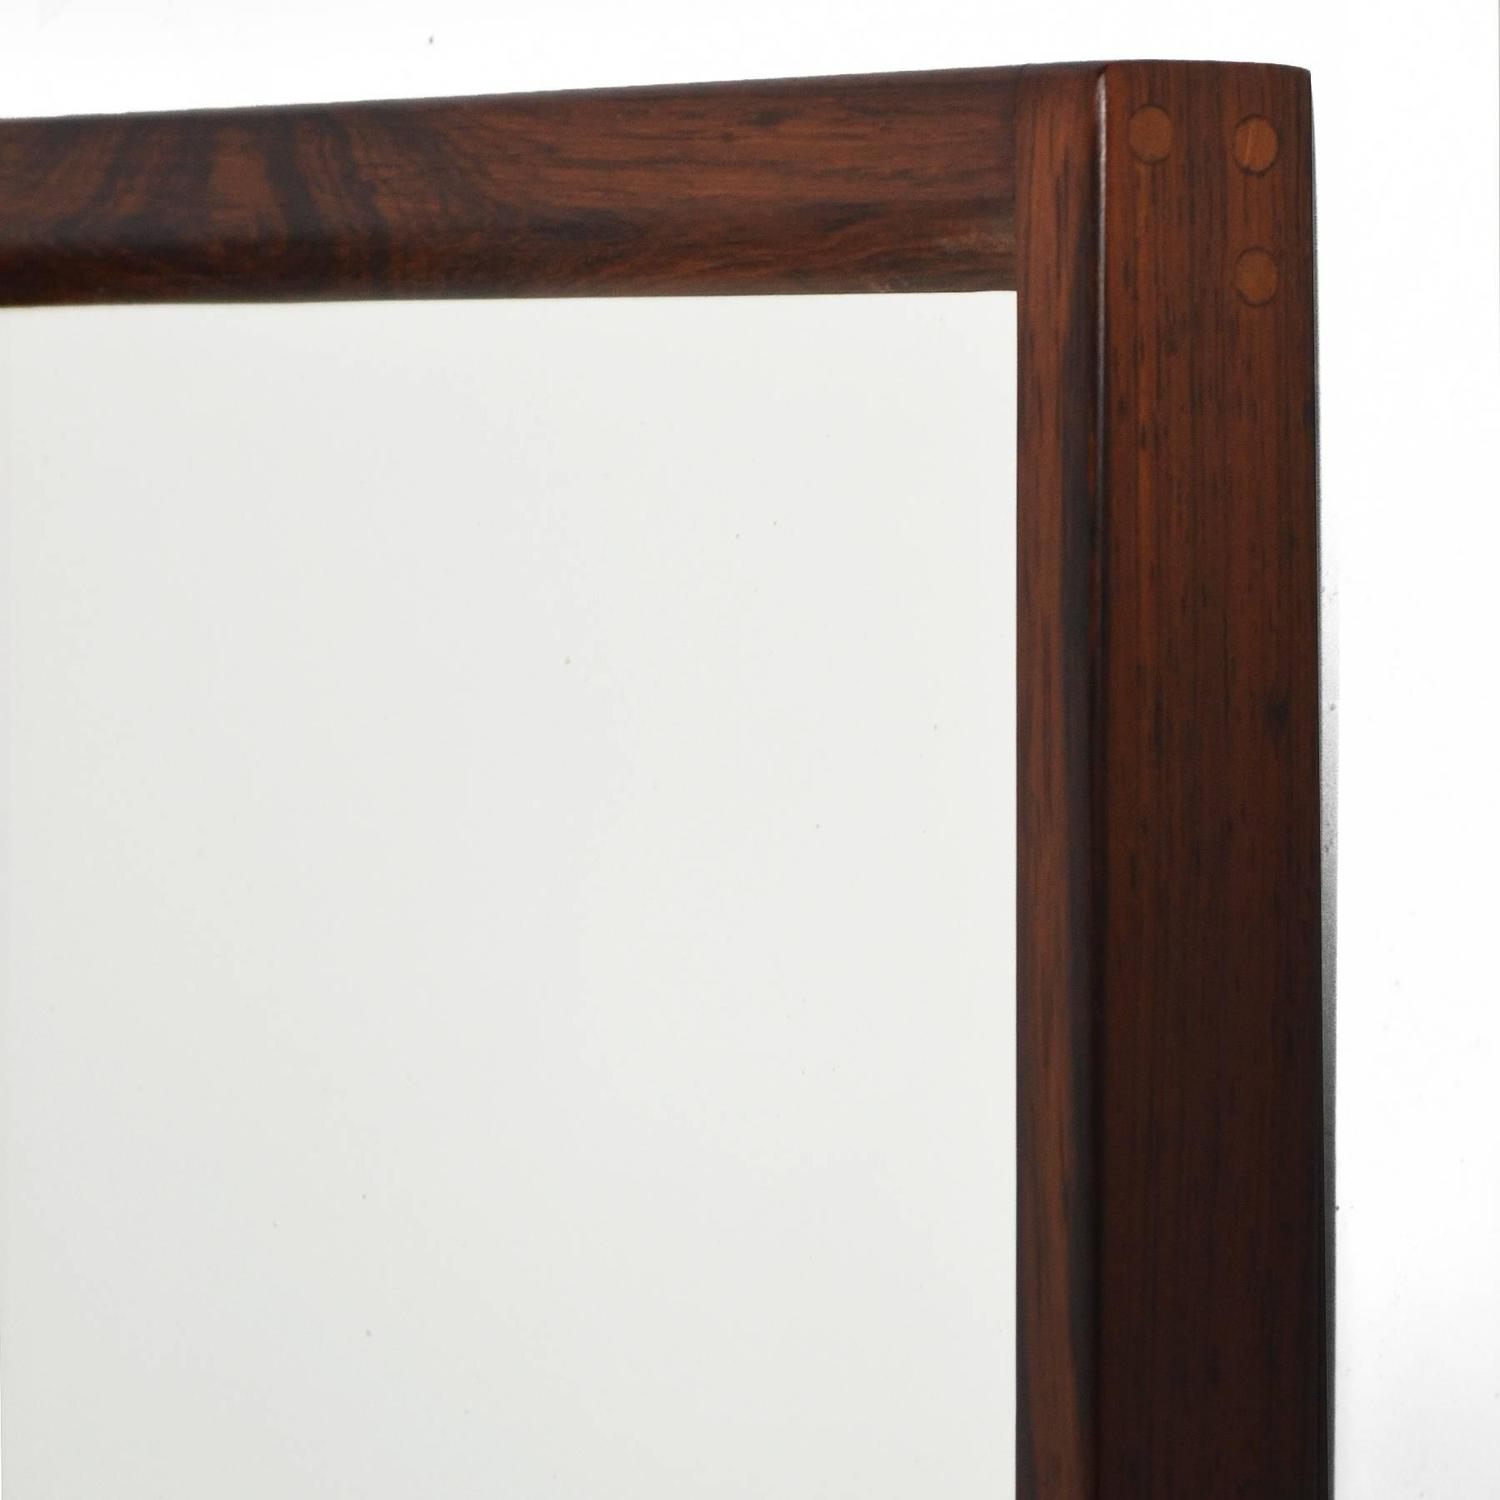 Kai Kristiansen Rosewood Bench And Mirror By Aksel Kjersgaard At 1stdibs